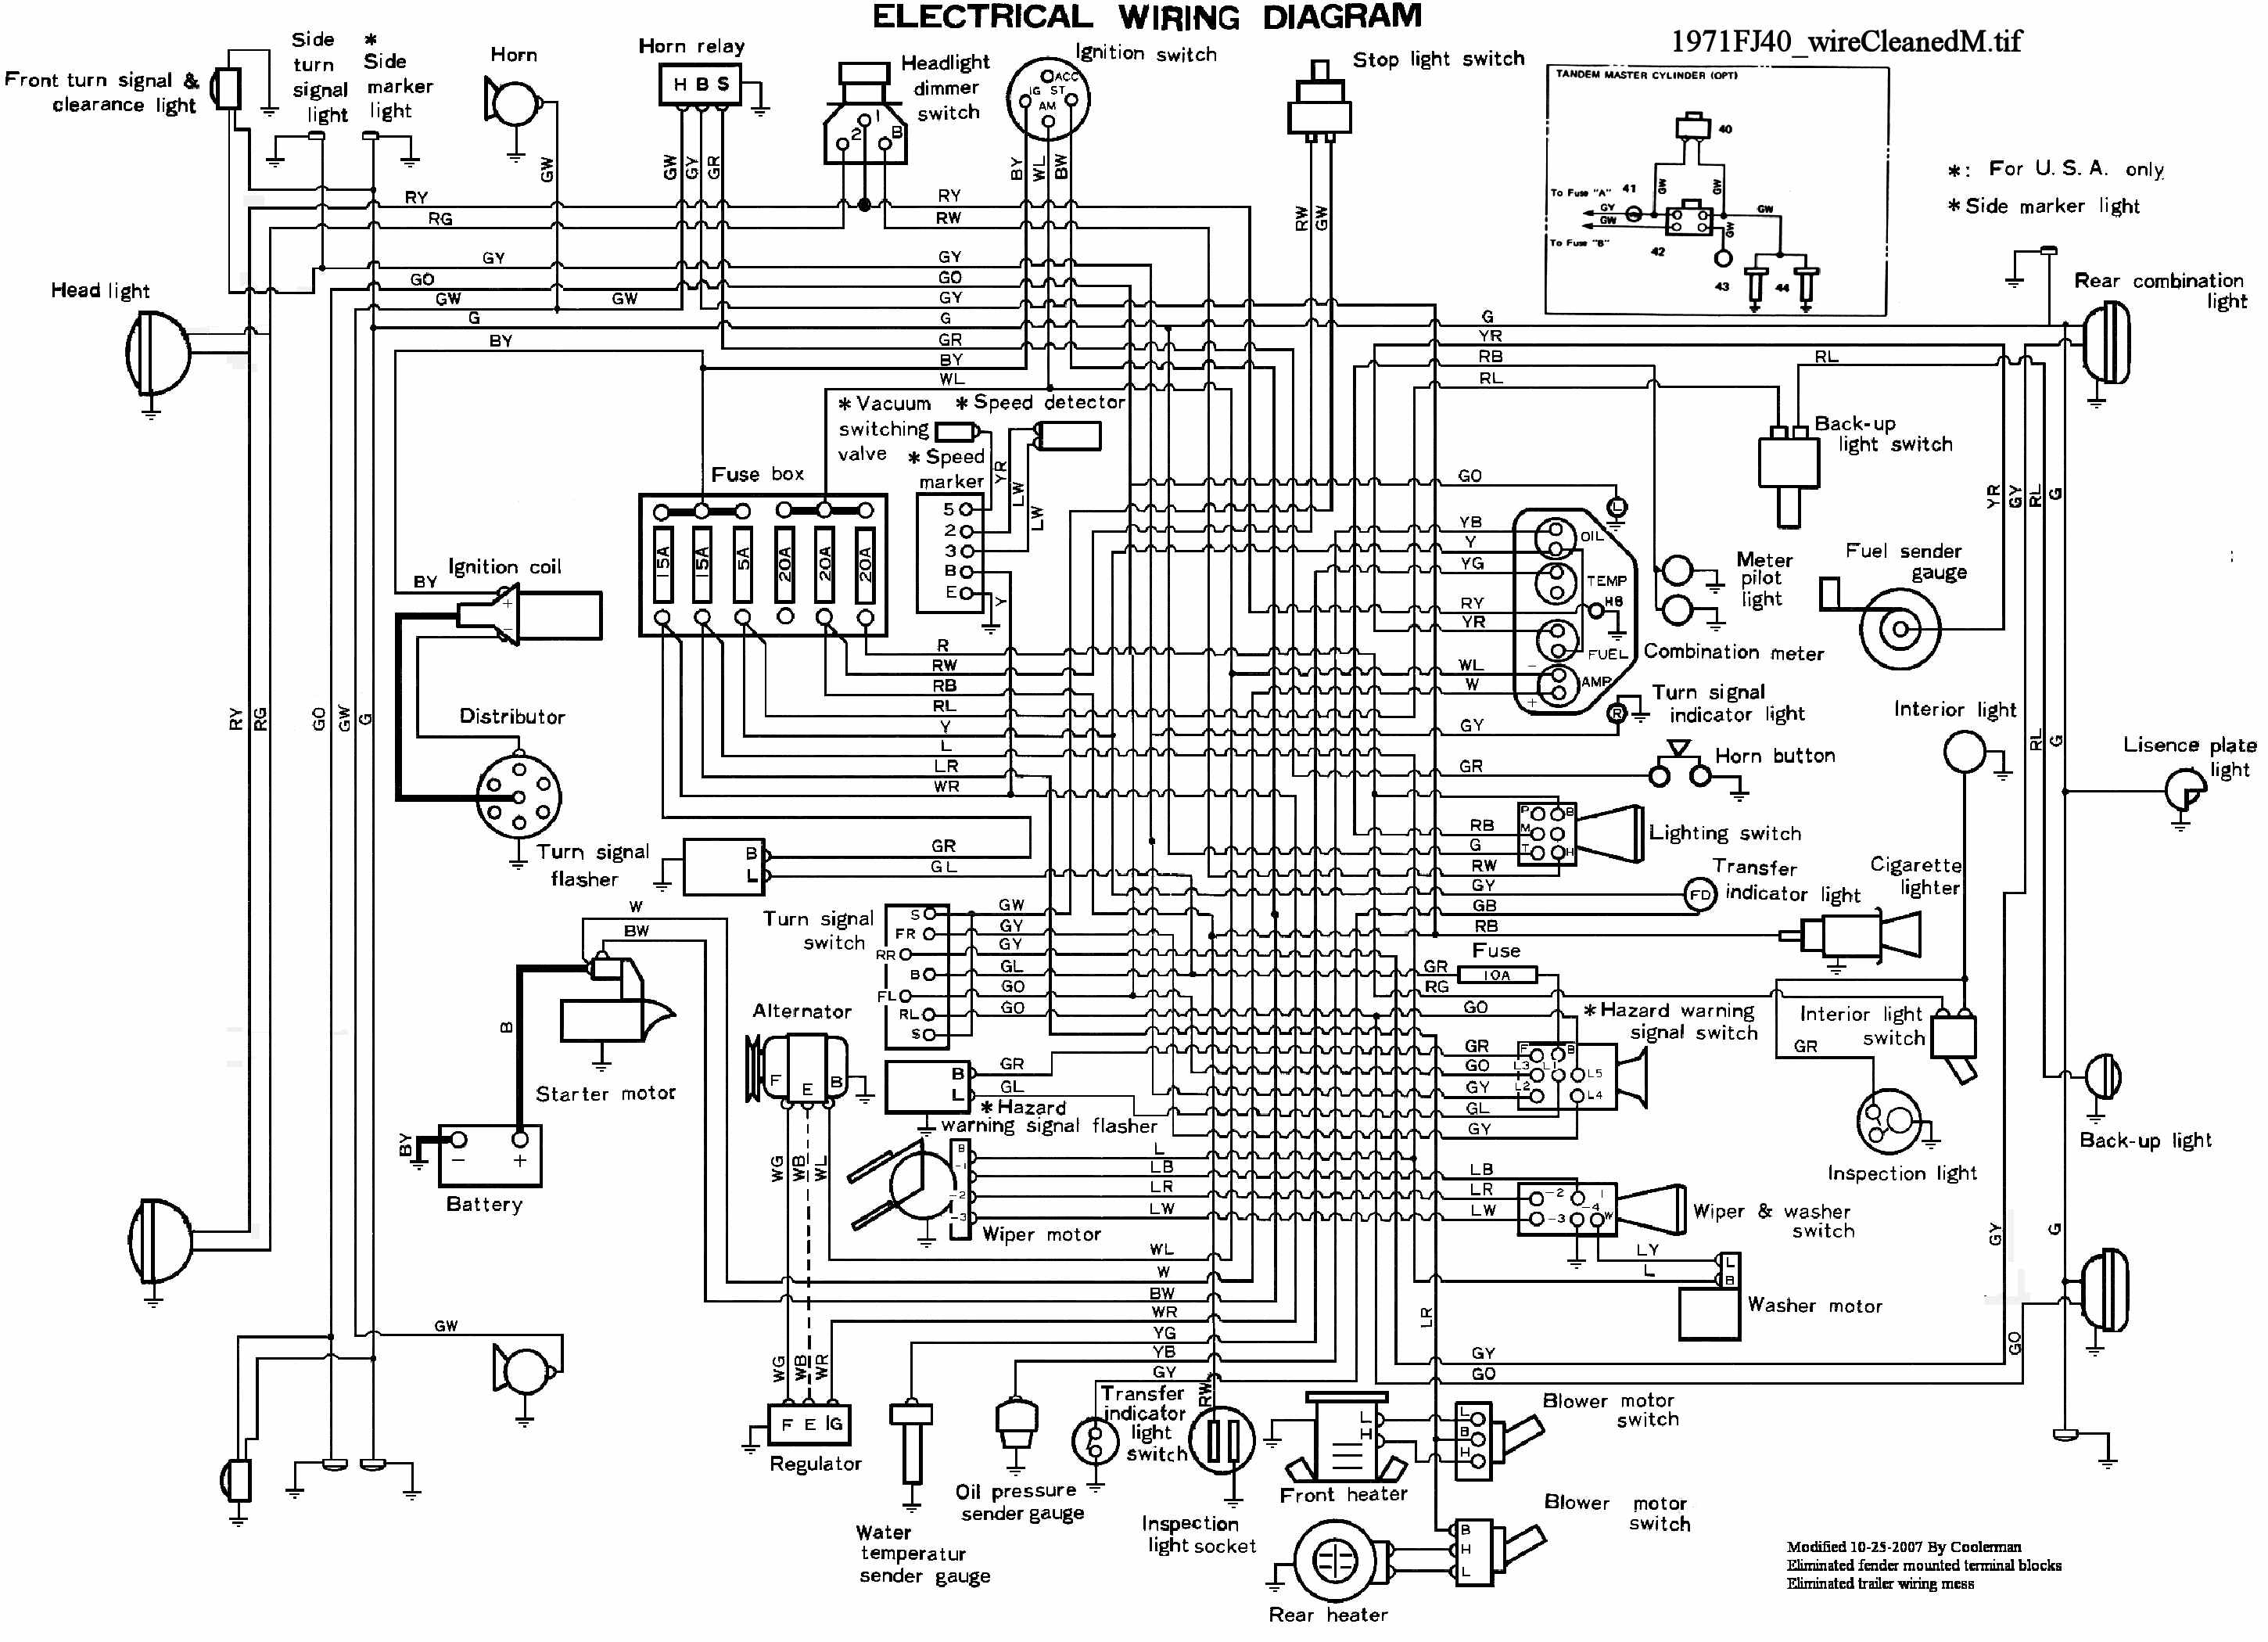 Painless Wiring Harness Toyota Fj40 | Wiring Diagram on controller layout, usb cable layout, seat layout, bracket layout, fuse box layout,